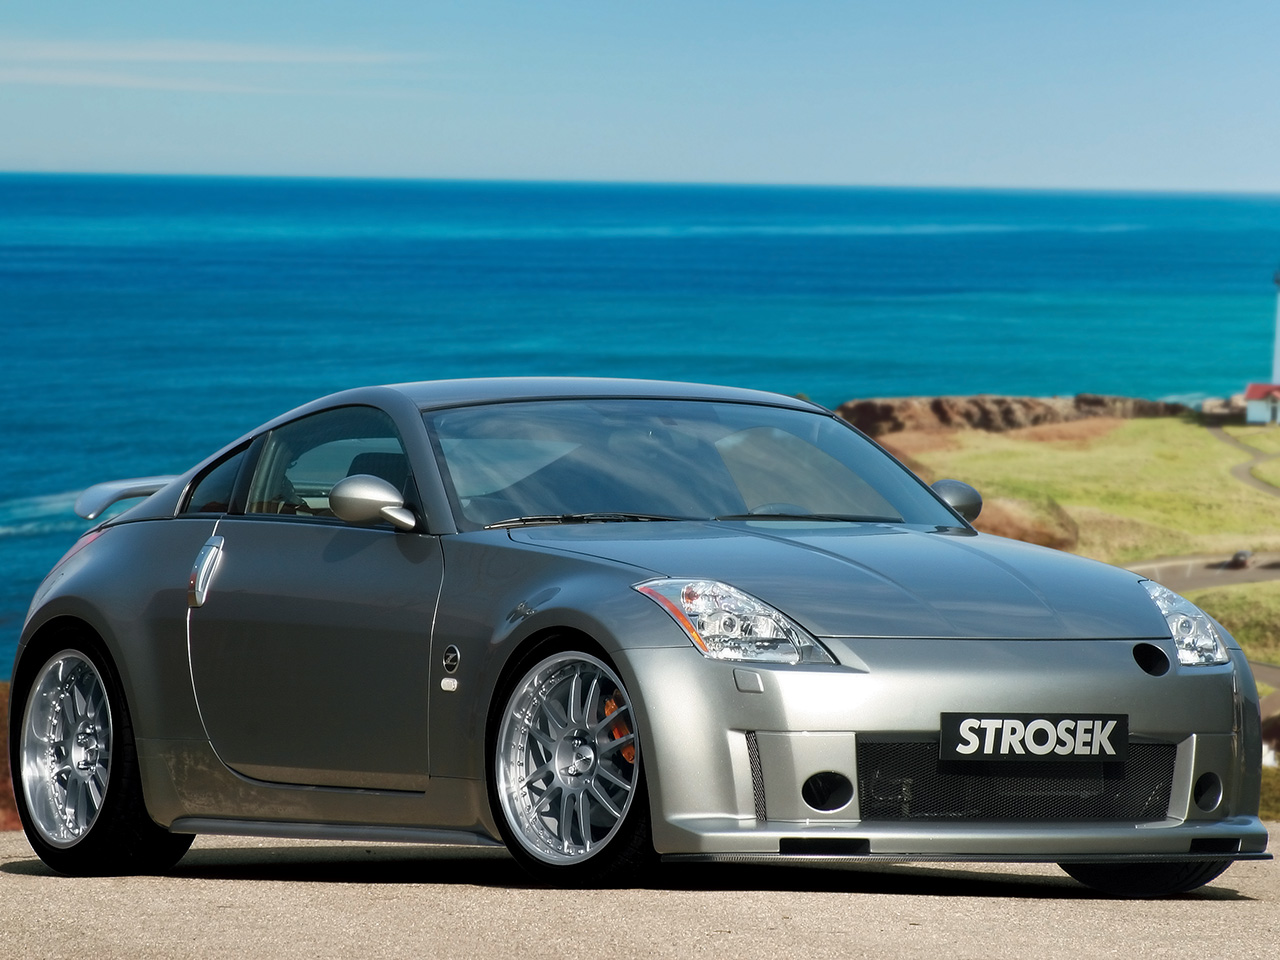 The Nissan 350z Is A Two Seat Sports Car Manufactured By Motor Co Ltd Fifth And Cur Generation Of S Z Line